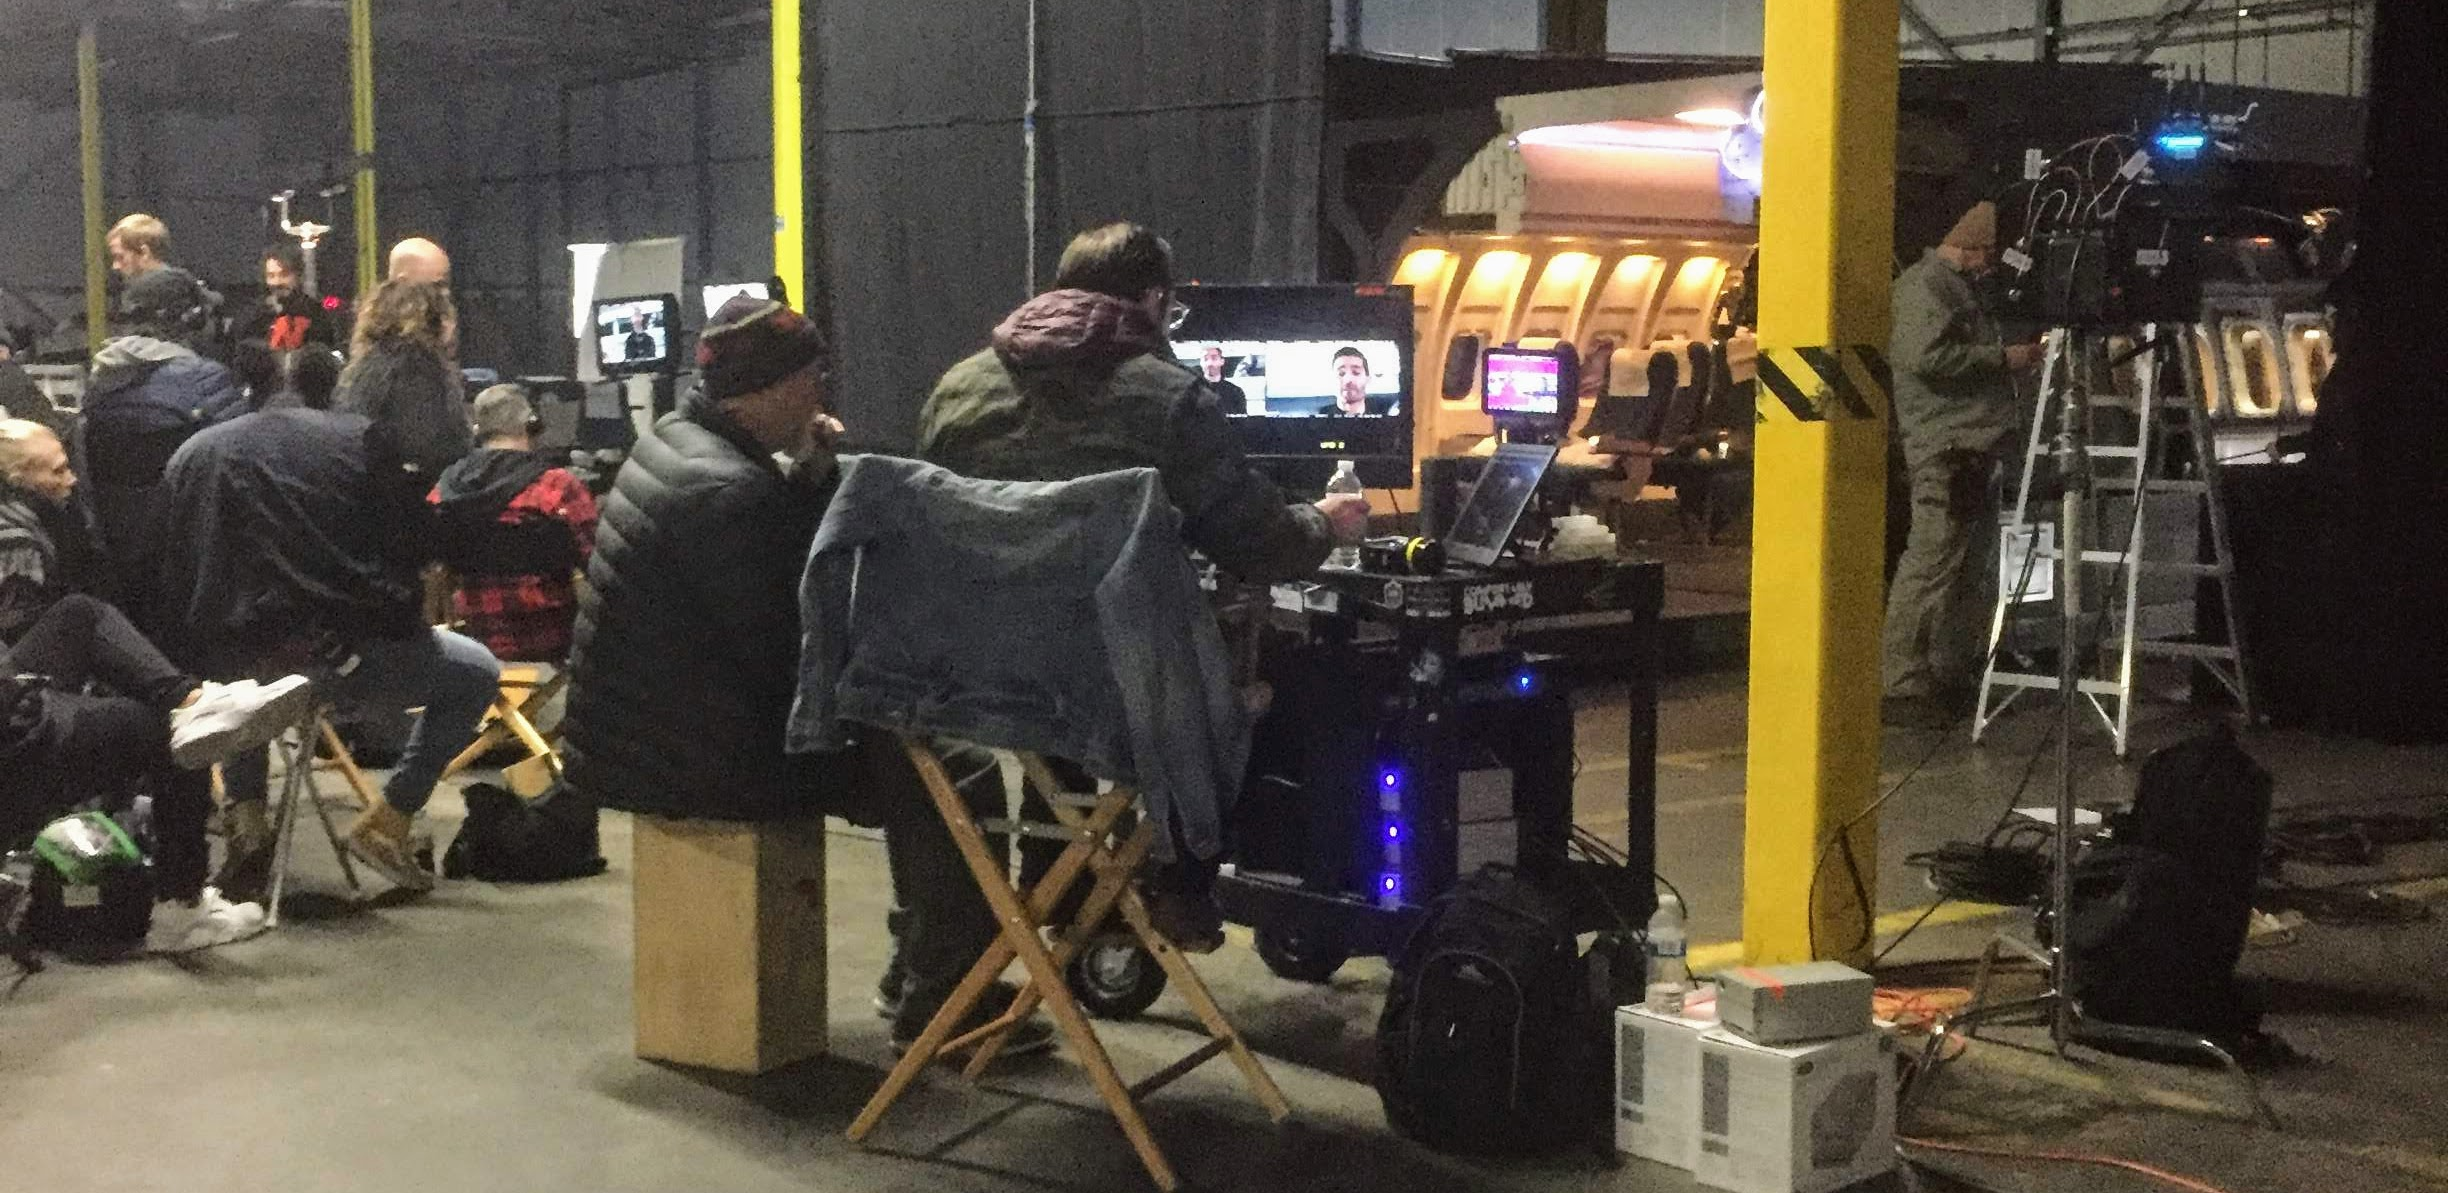 On location in the Town of Ulster at Tech City Soundstages with CAN YOU KEEP A SECRET?